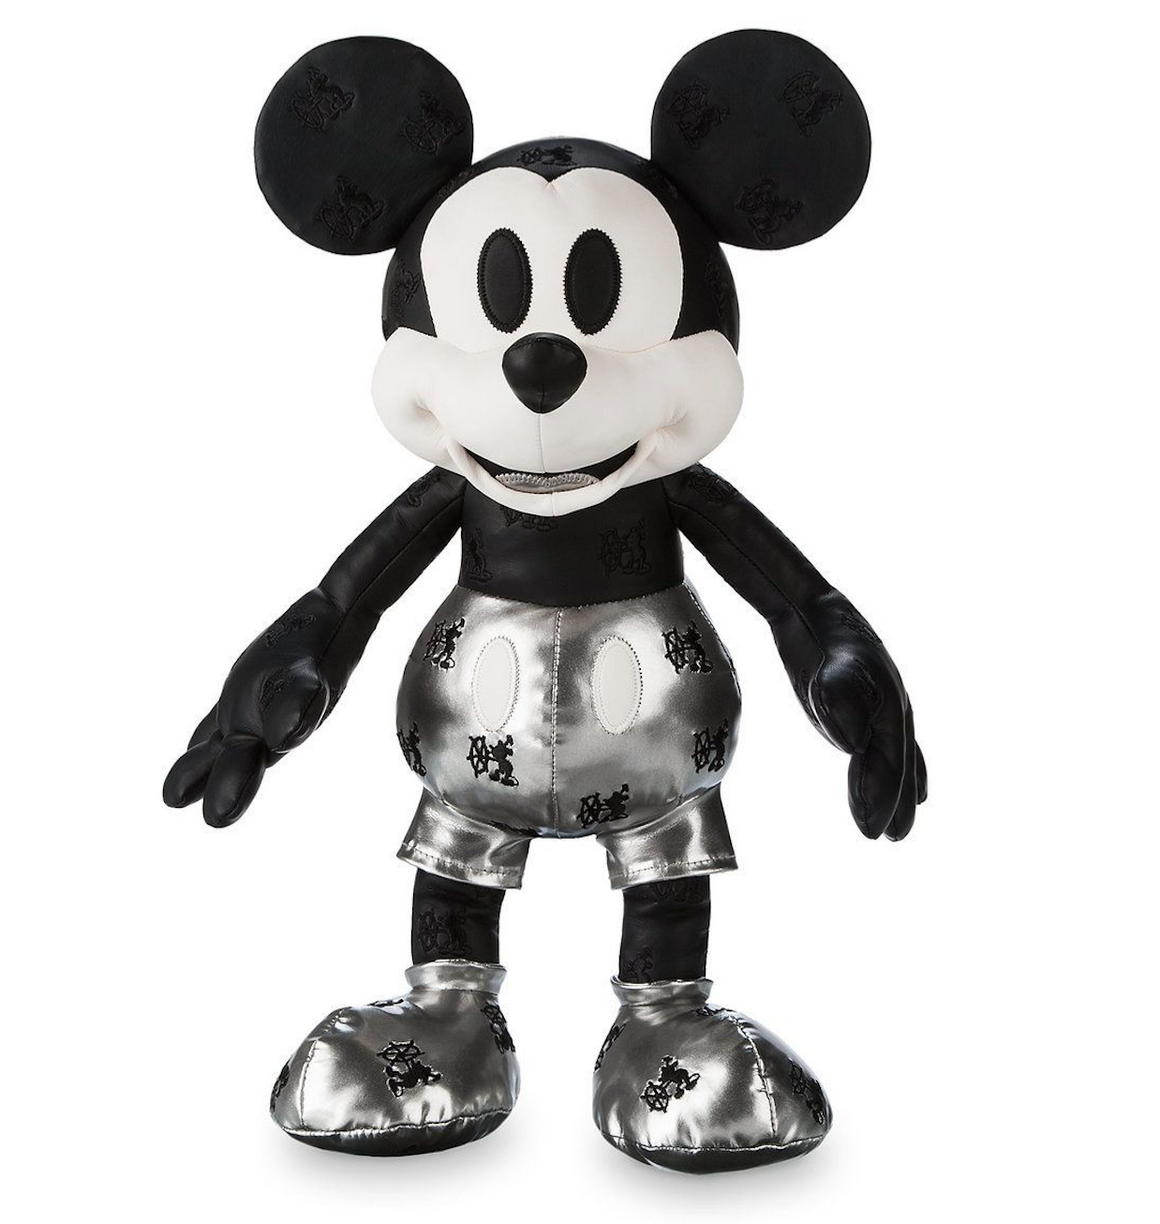 Disney Mickey Mouse Memories Plush - January 2018 - Limited Edition